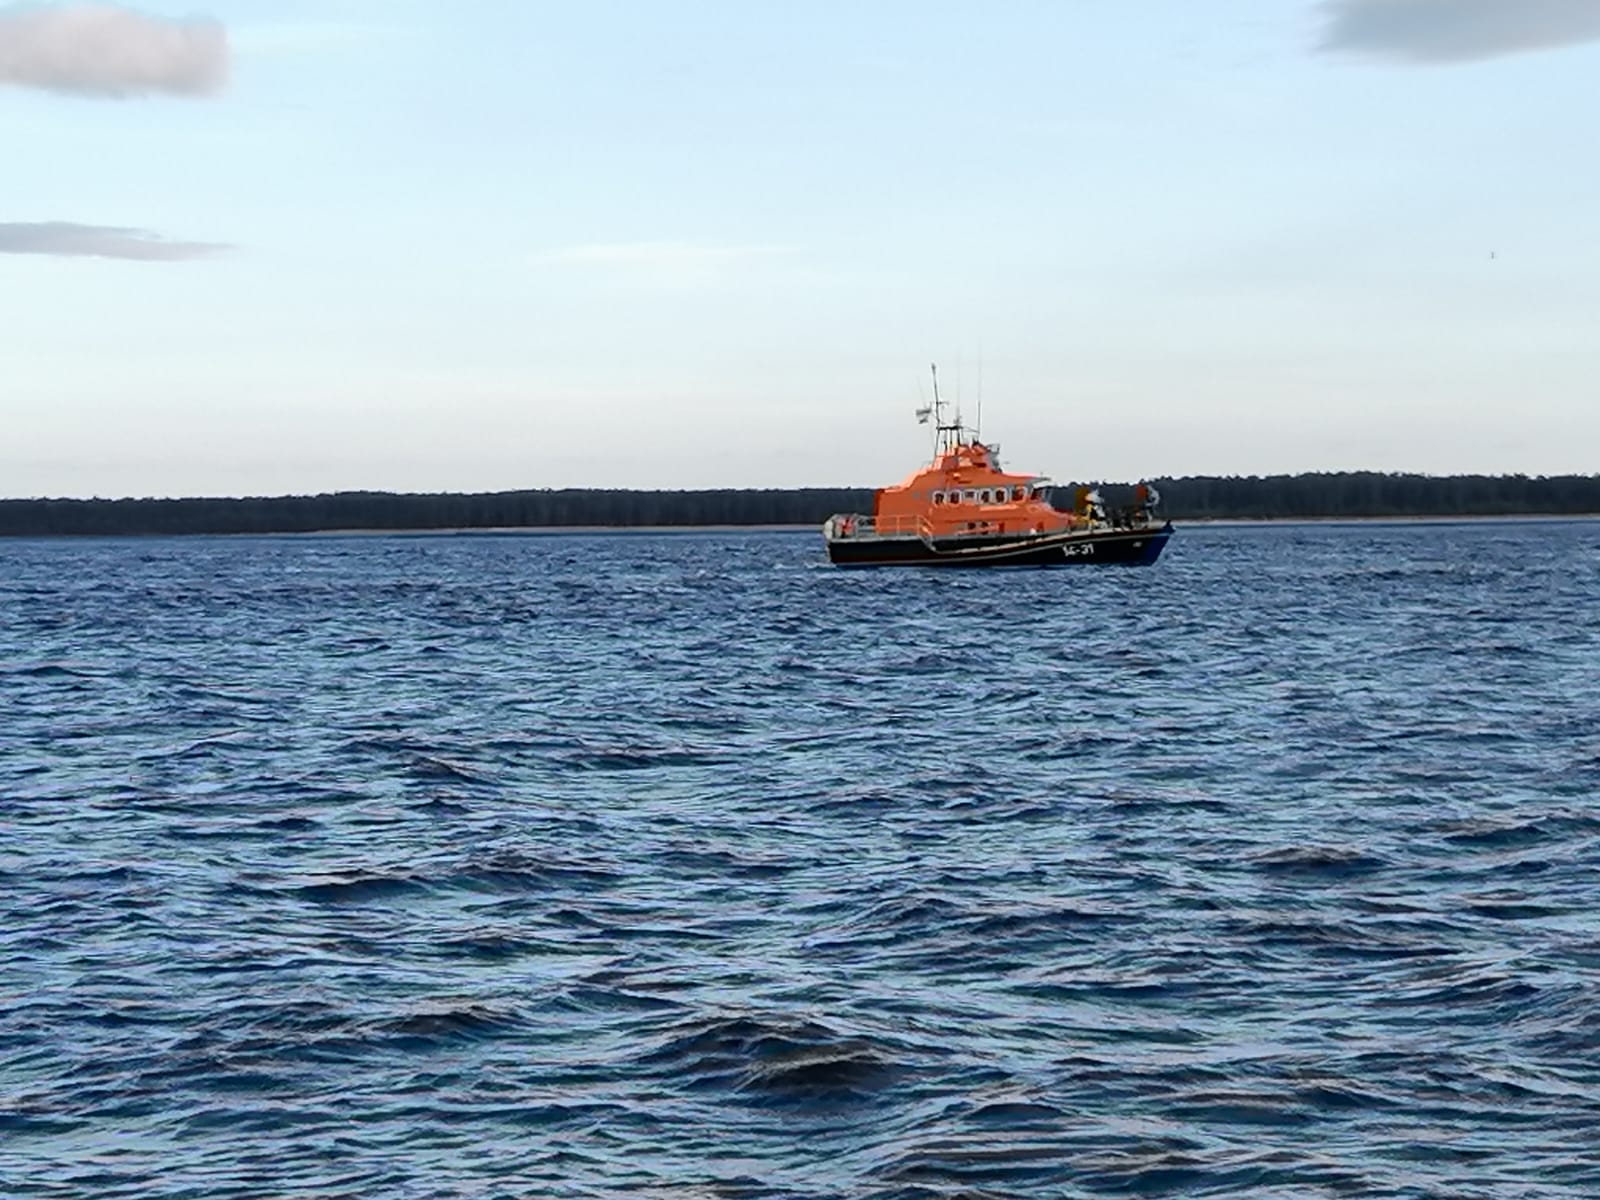 The lifeboat in action.